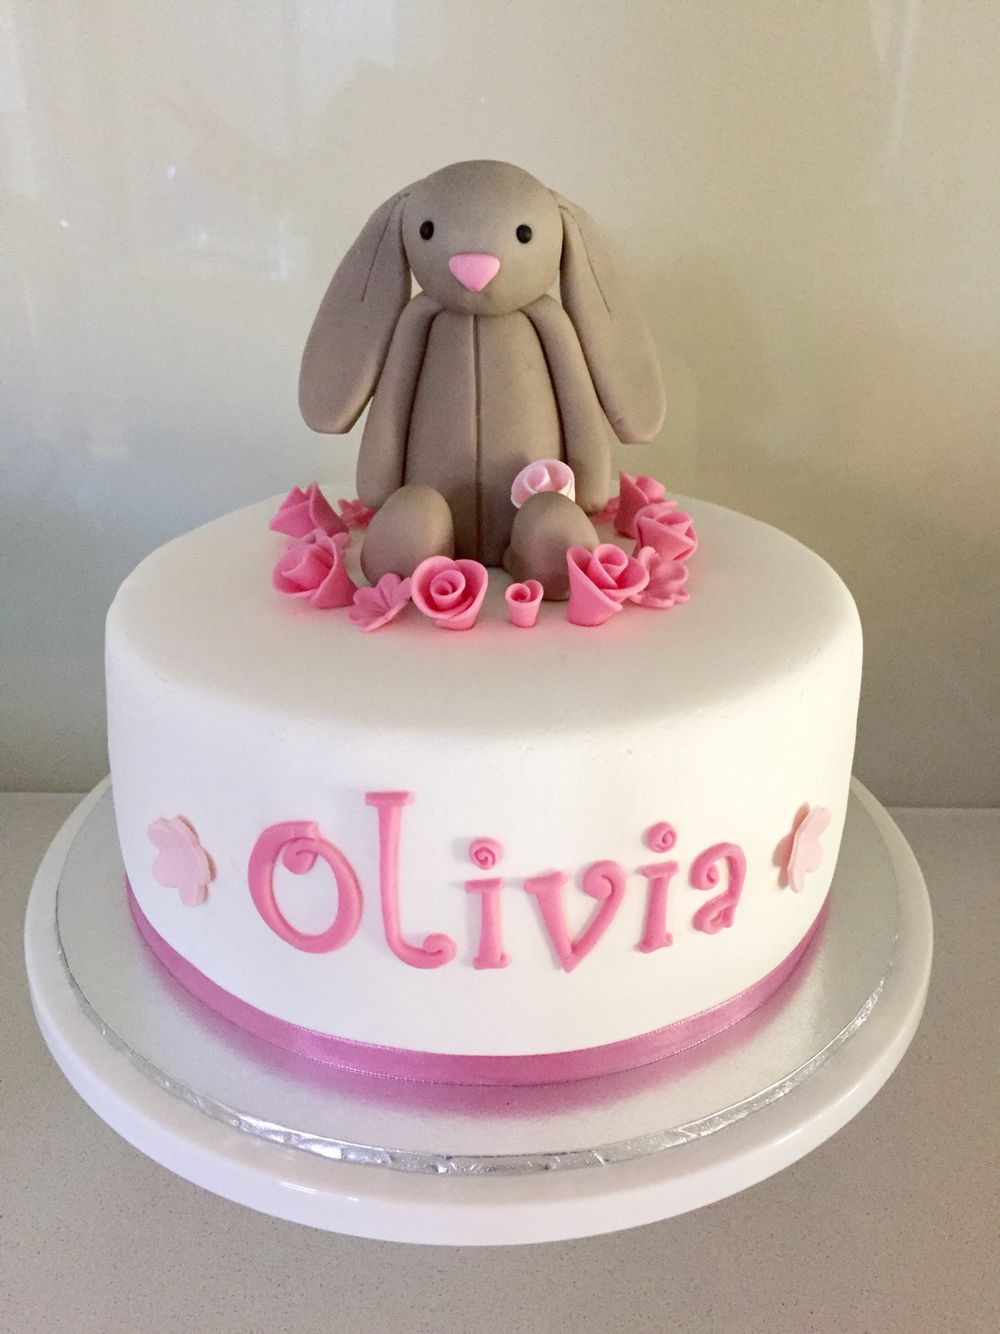 Images For Rabbit Cakes : Jelly cat bunny cake My cakes Pinterest Bunny, Cake ...